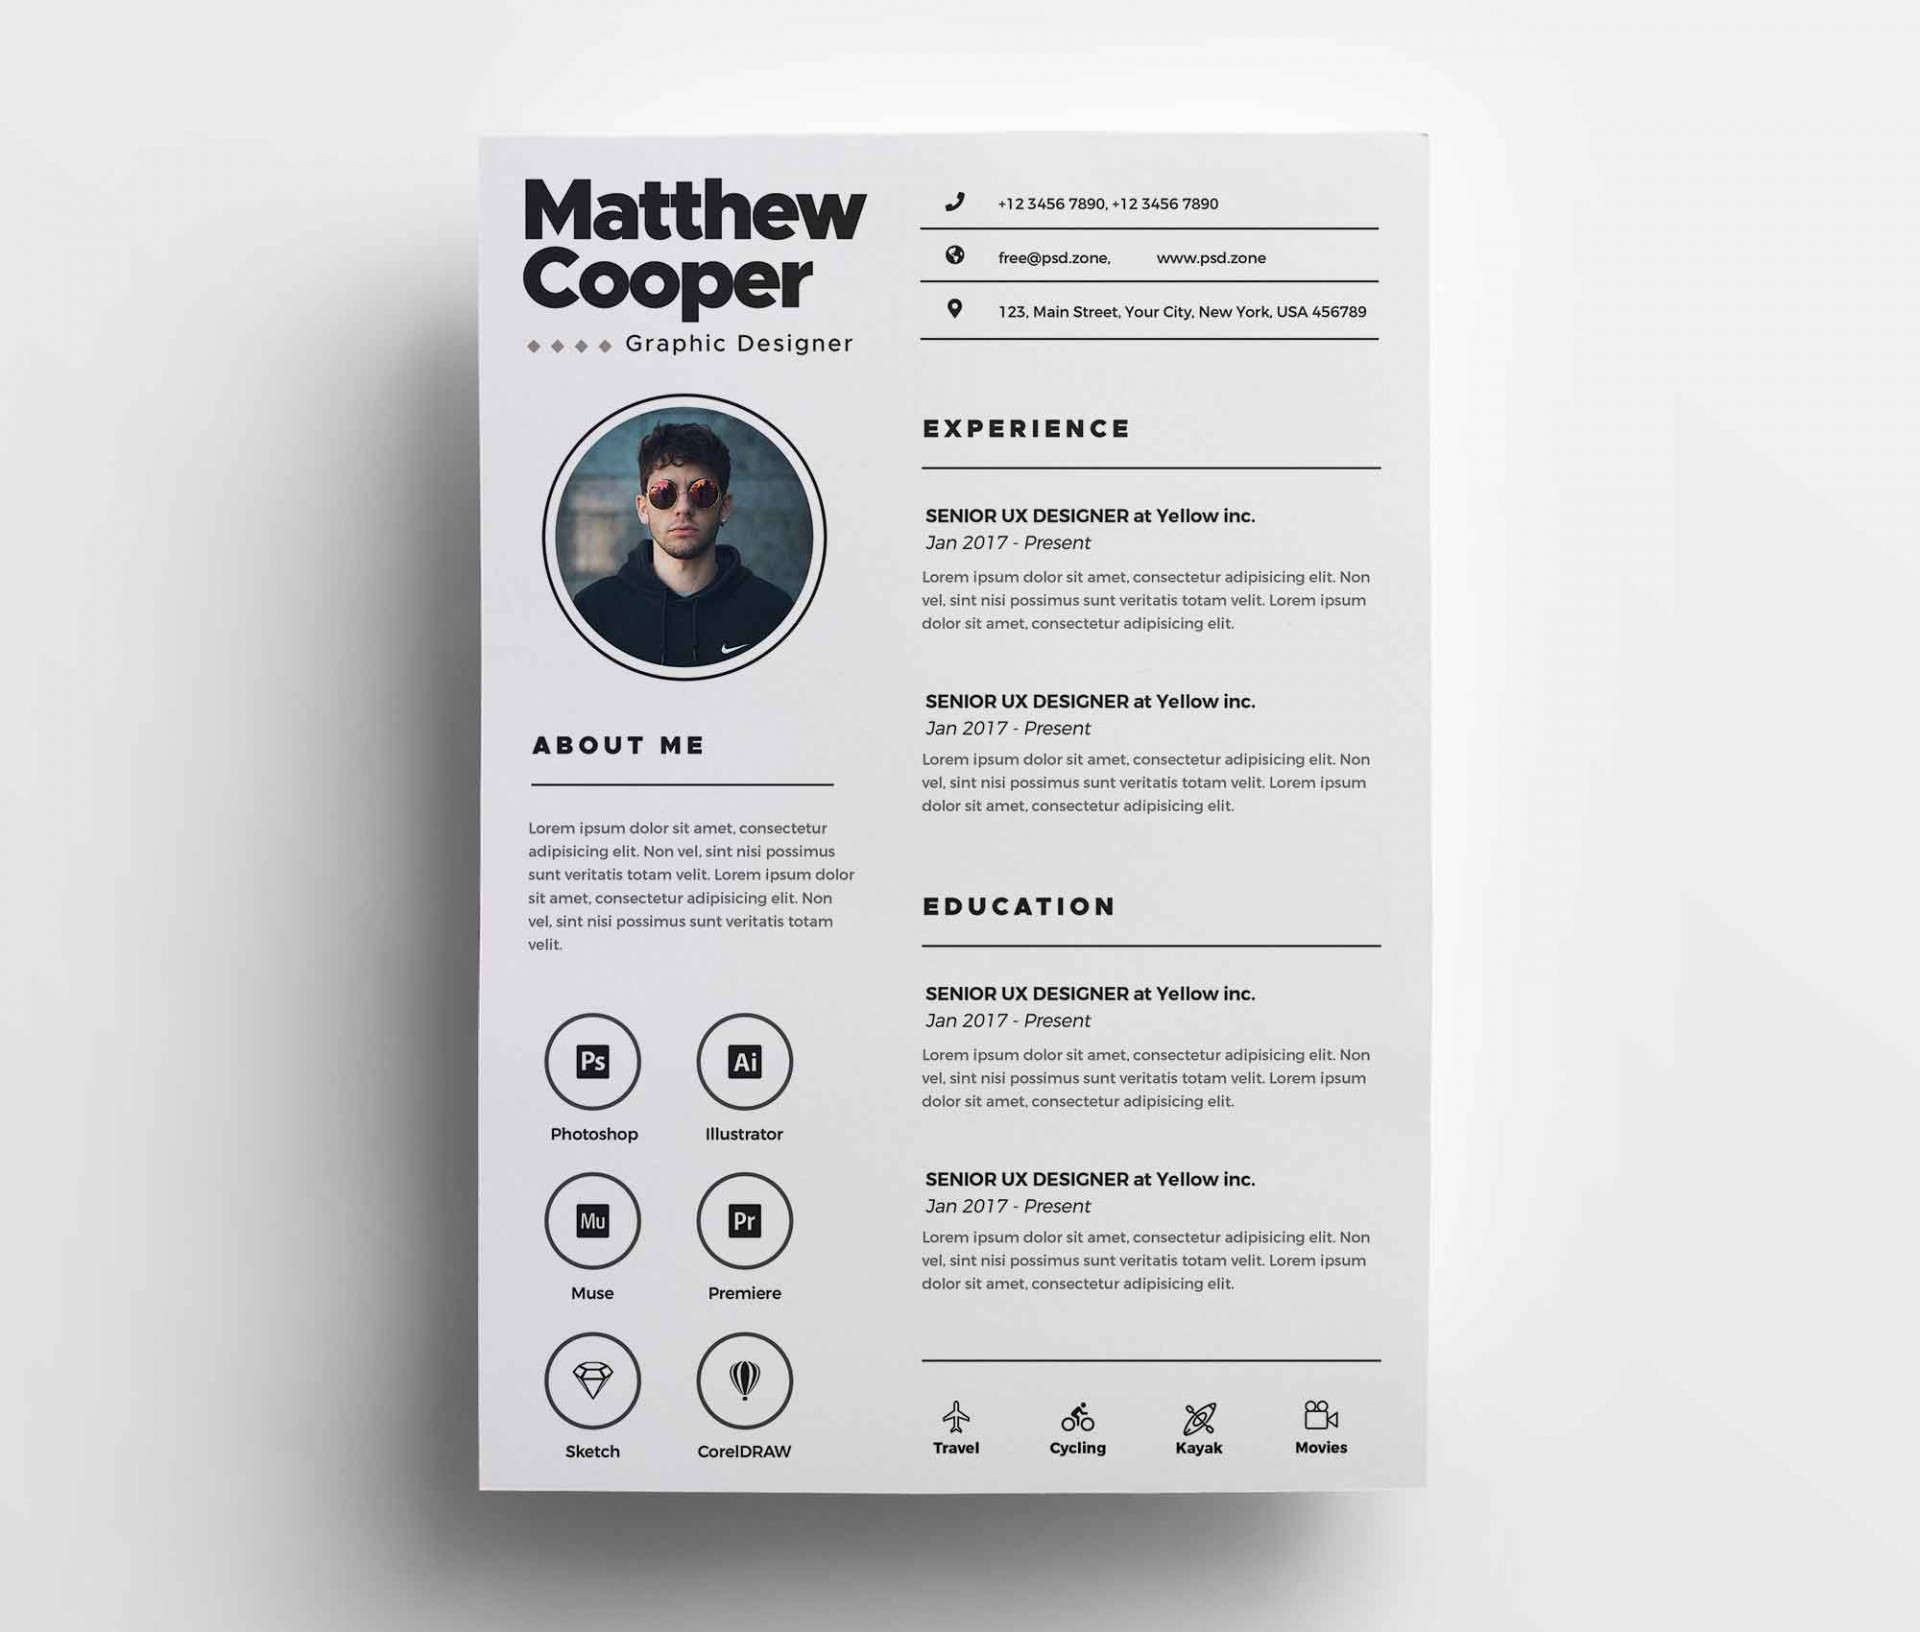 003 Stunning Cv Design Photoshop Template Free Idea  Creative Resume Psd Download1920